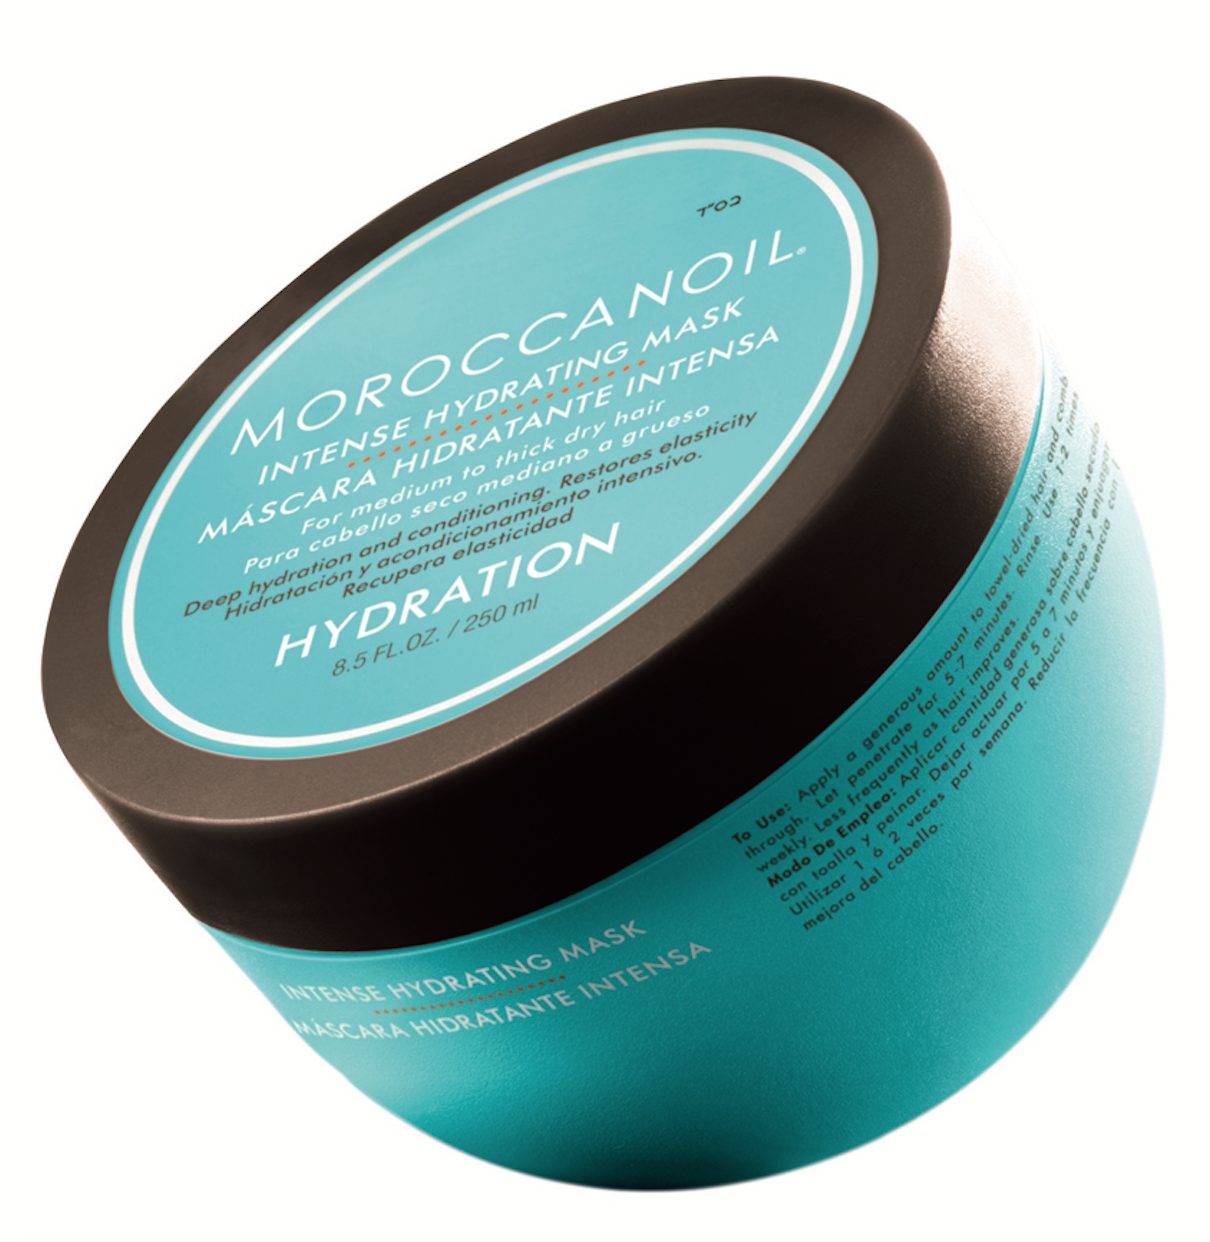 Moroccanoil  Intense Hydrating Mask conditions and dramatically improves hair texture, elasticity and shine with antioxidant-rich argan oil.